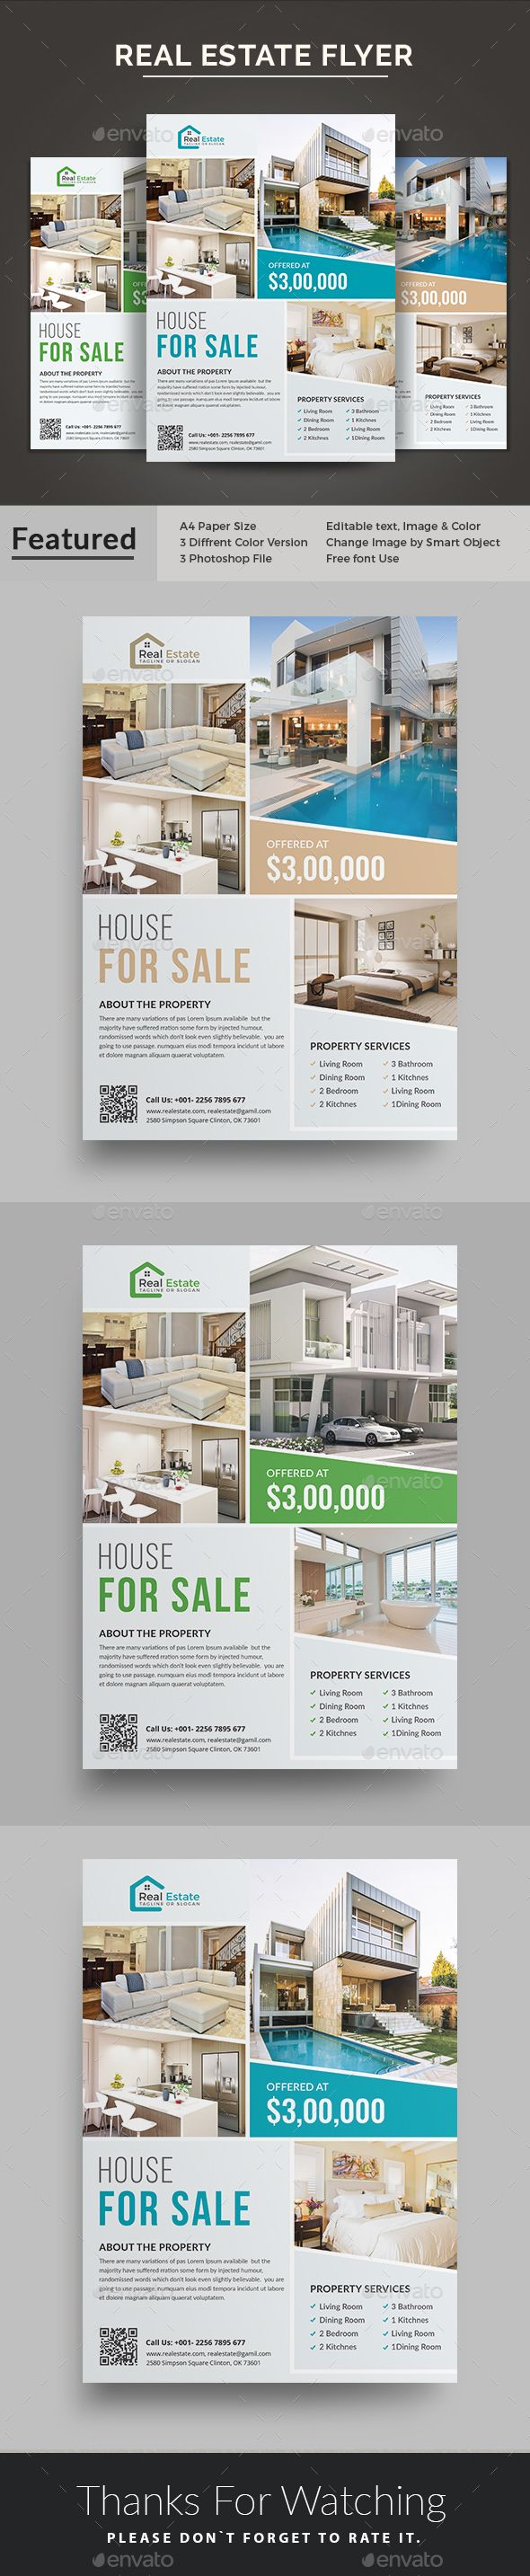 Real Estate Flyer Template Is A Great Tool For Promoting Your Real